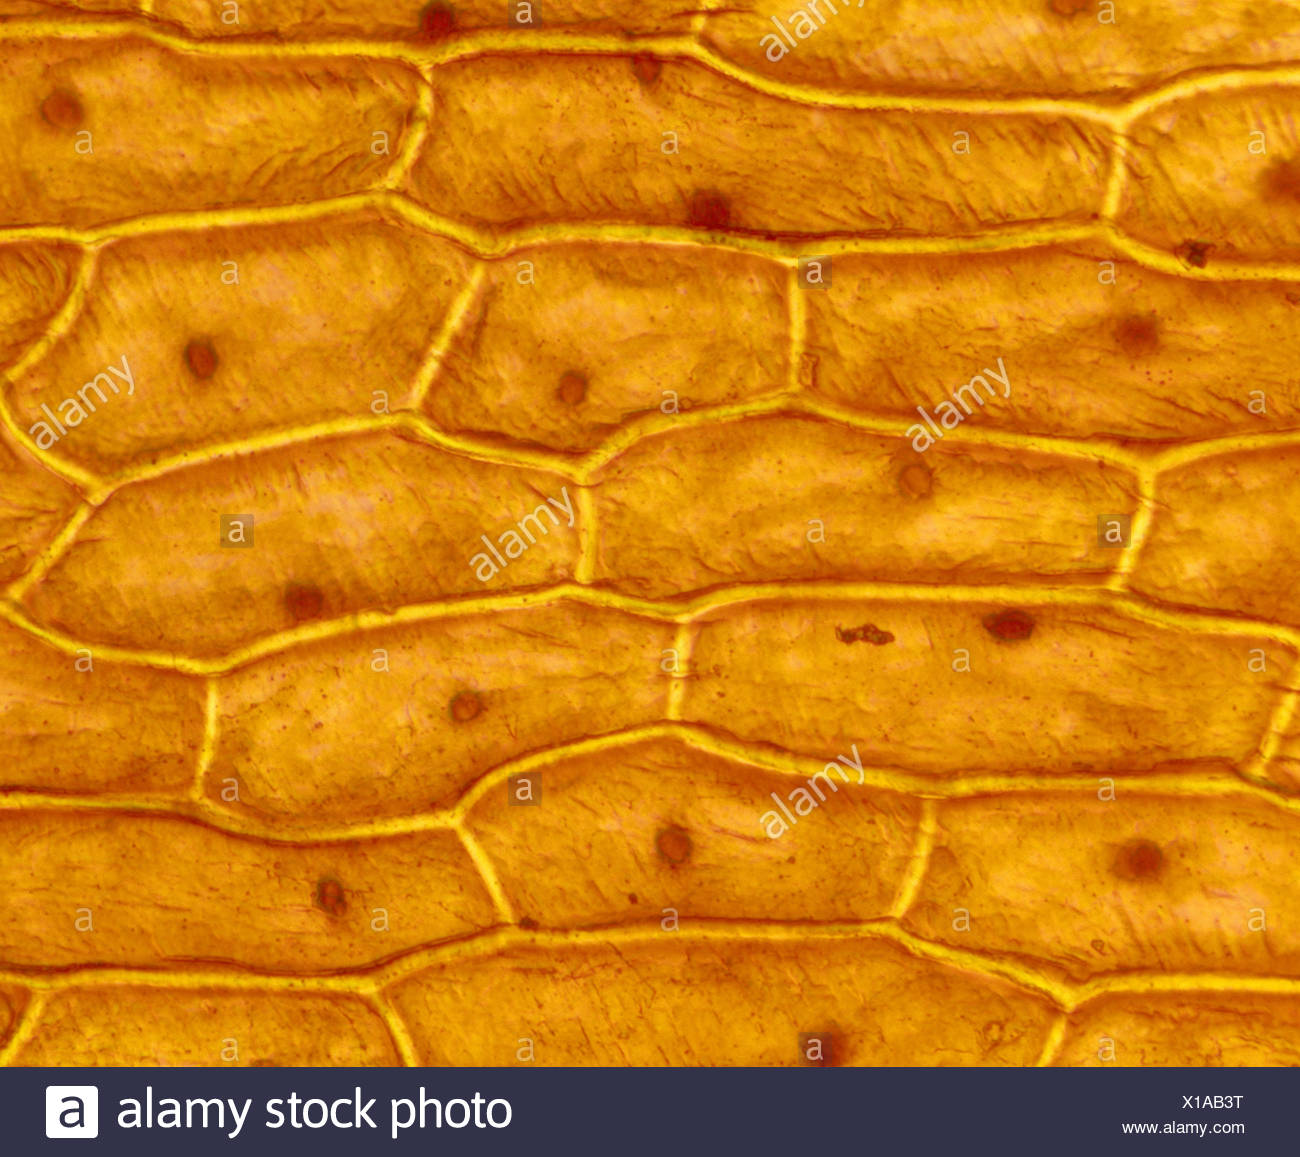 onion cell diagram math fraction cells stock photos and images alamy